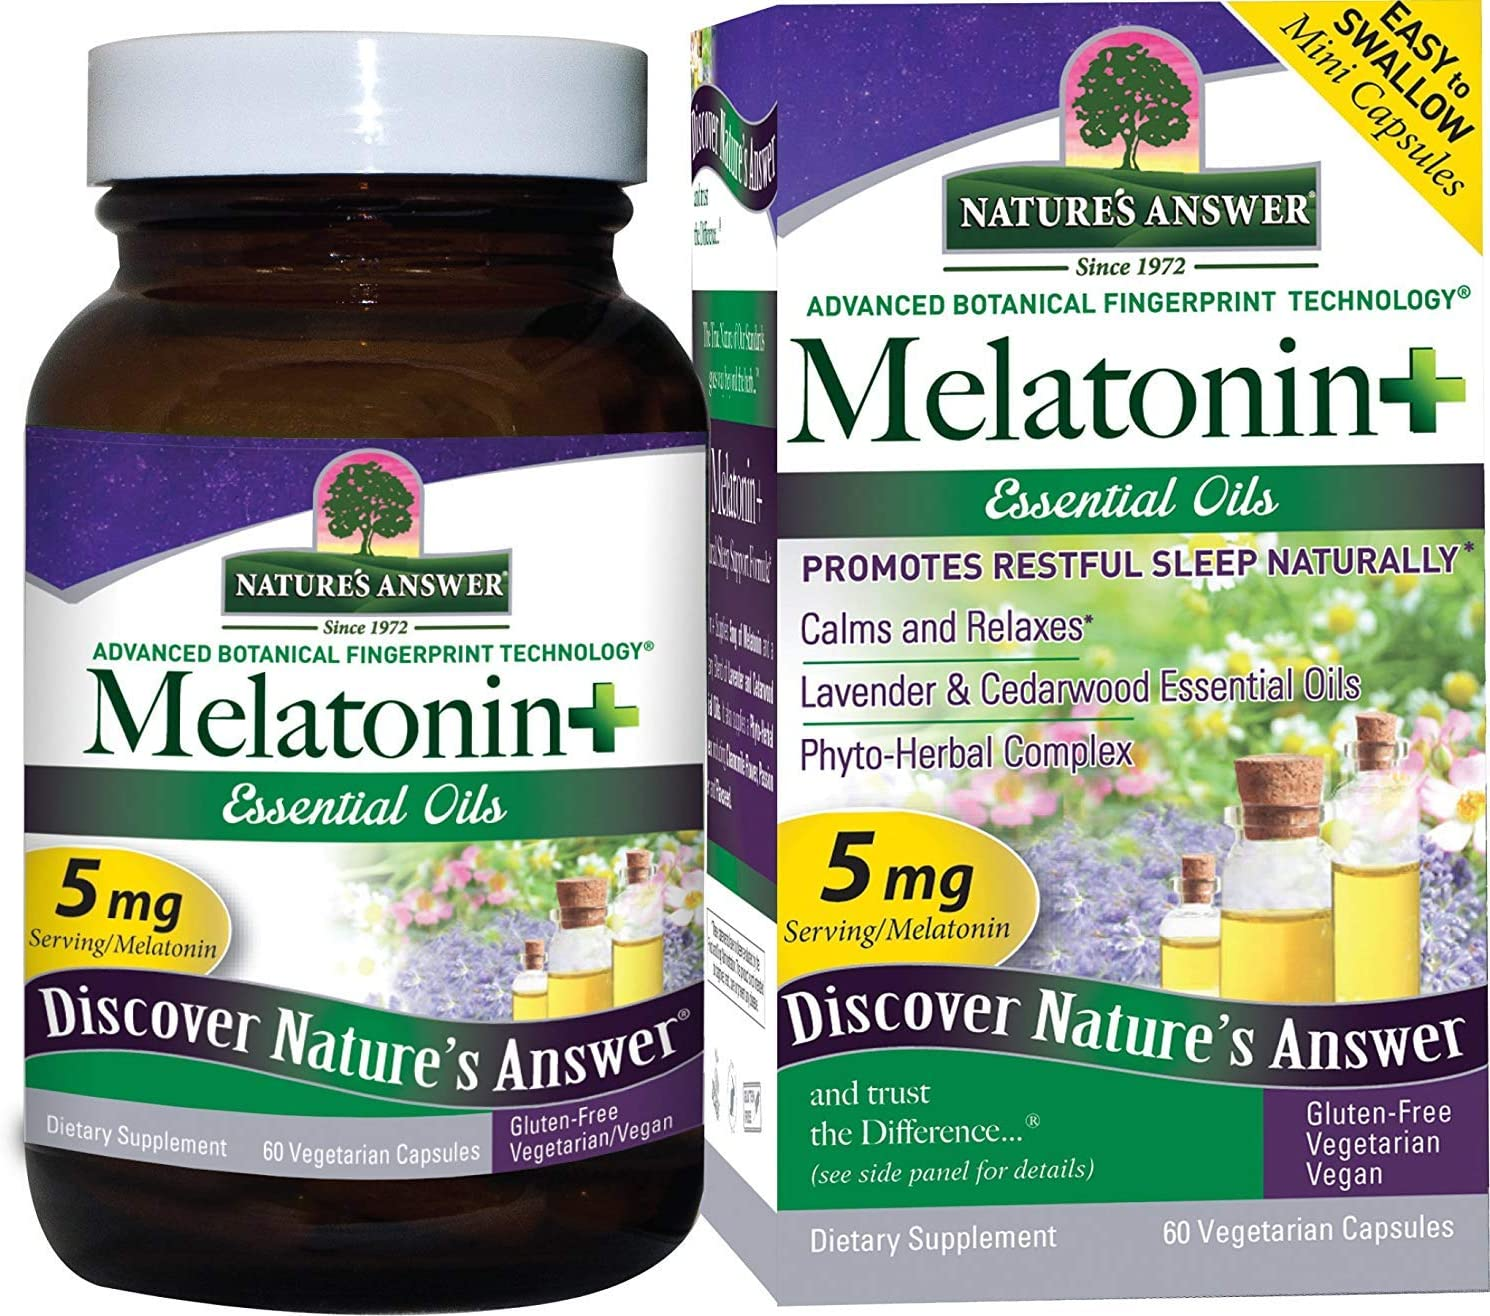 Nature's Answer Melatonin+, 60 Count Capsules Promotes Restful Sleep | Melatonin plus Essential oils Lavender Calms and Relaxes